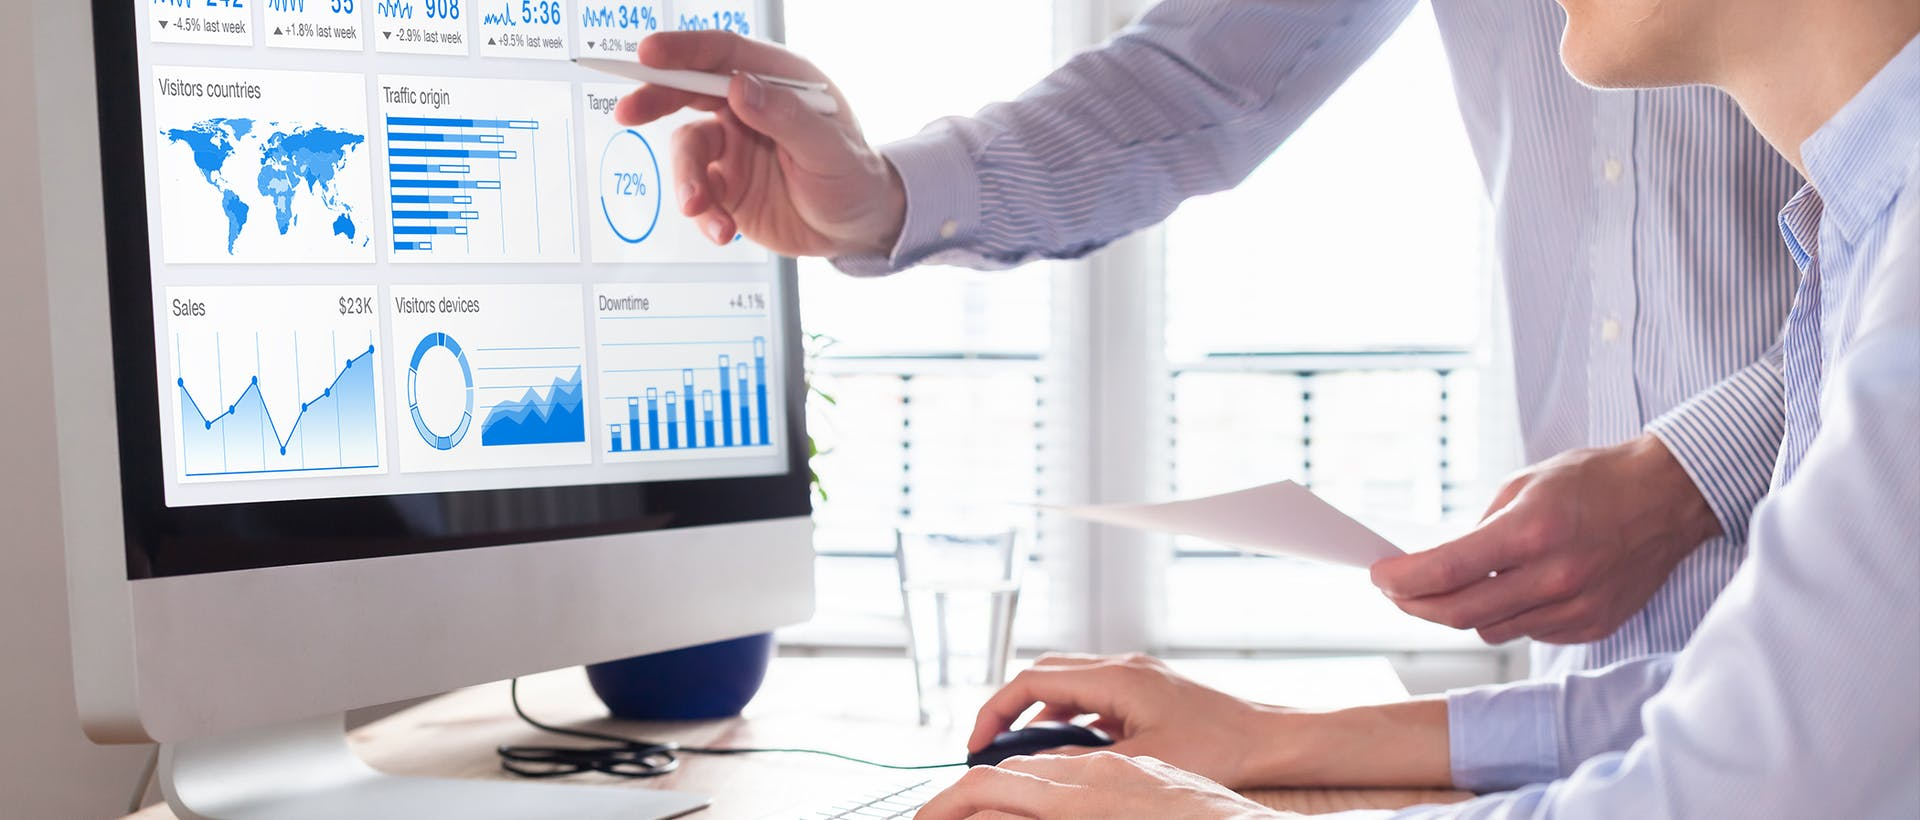 Webinar: People look at a dashboard on a monitor